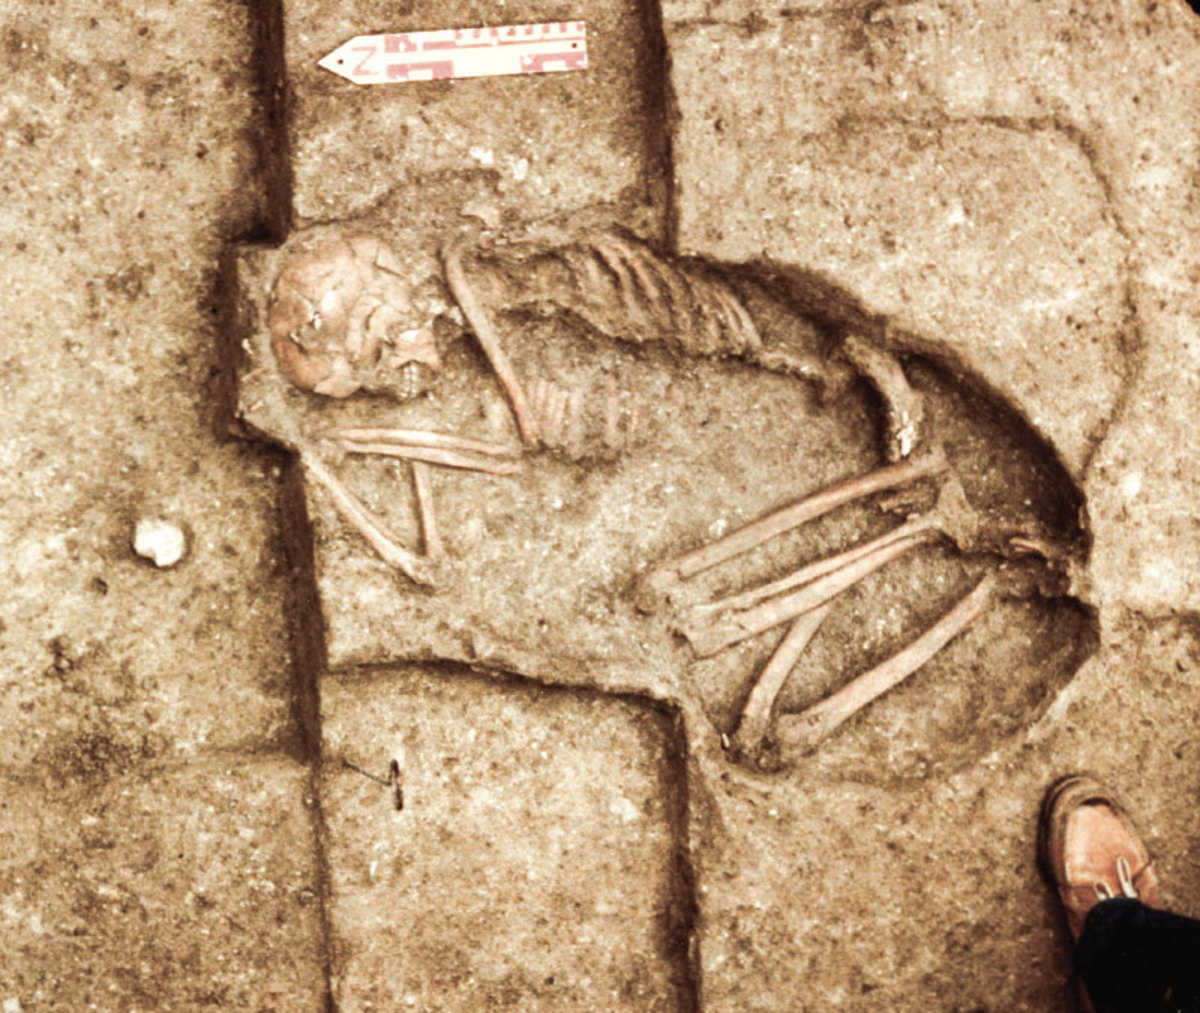 Leanderthal Lady as she was found